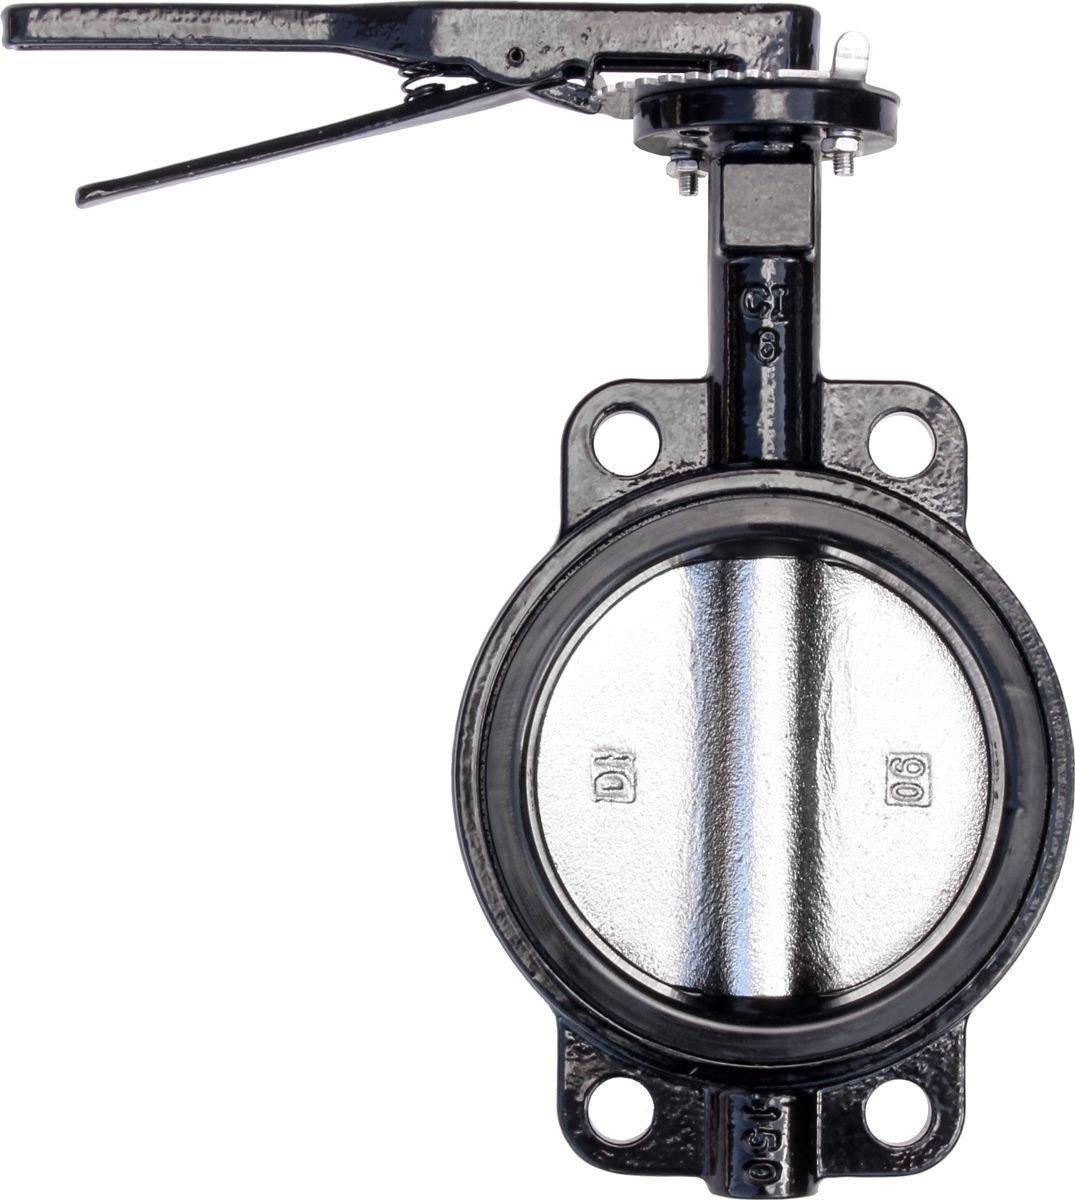 IrrigationKing RKLO6 Cast Iron Butterfly Valve, Lever Style, EPDM, Black, 6''